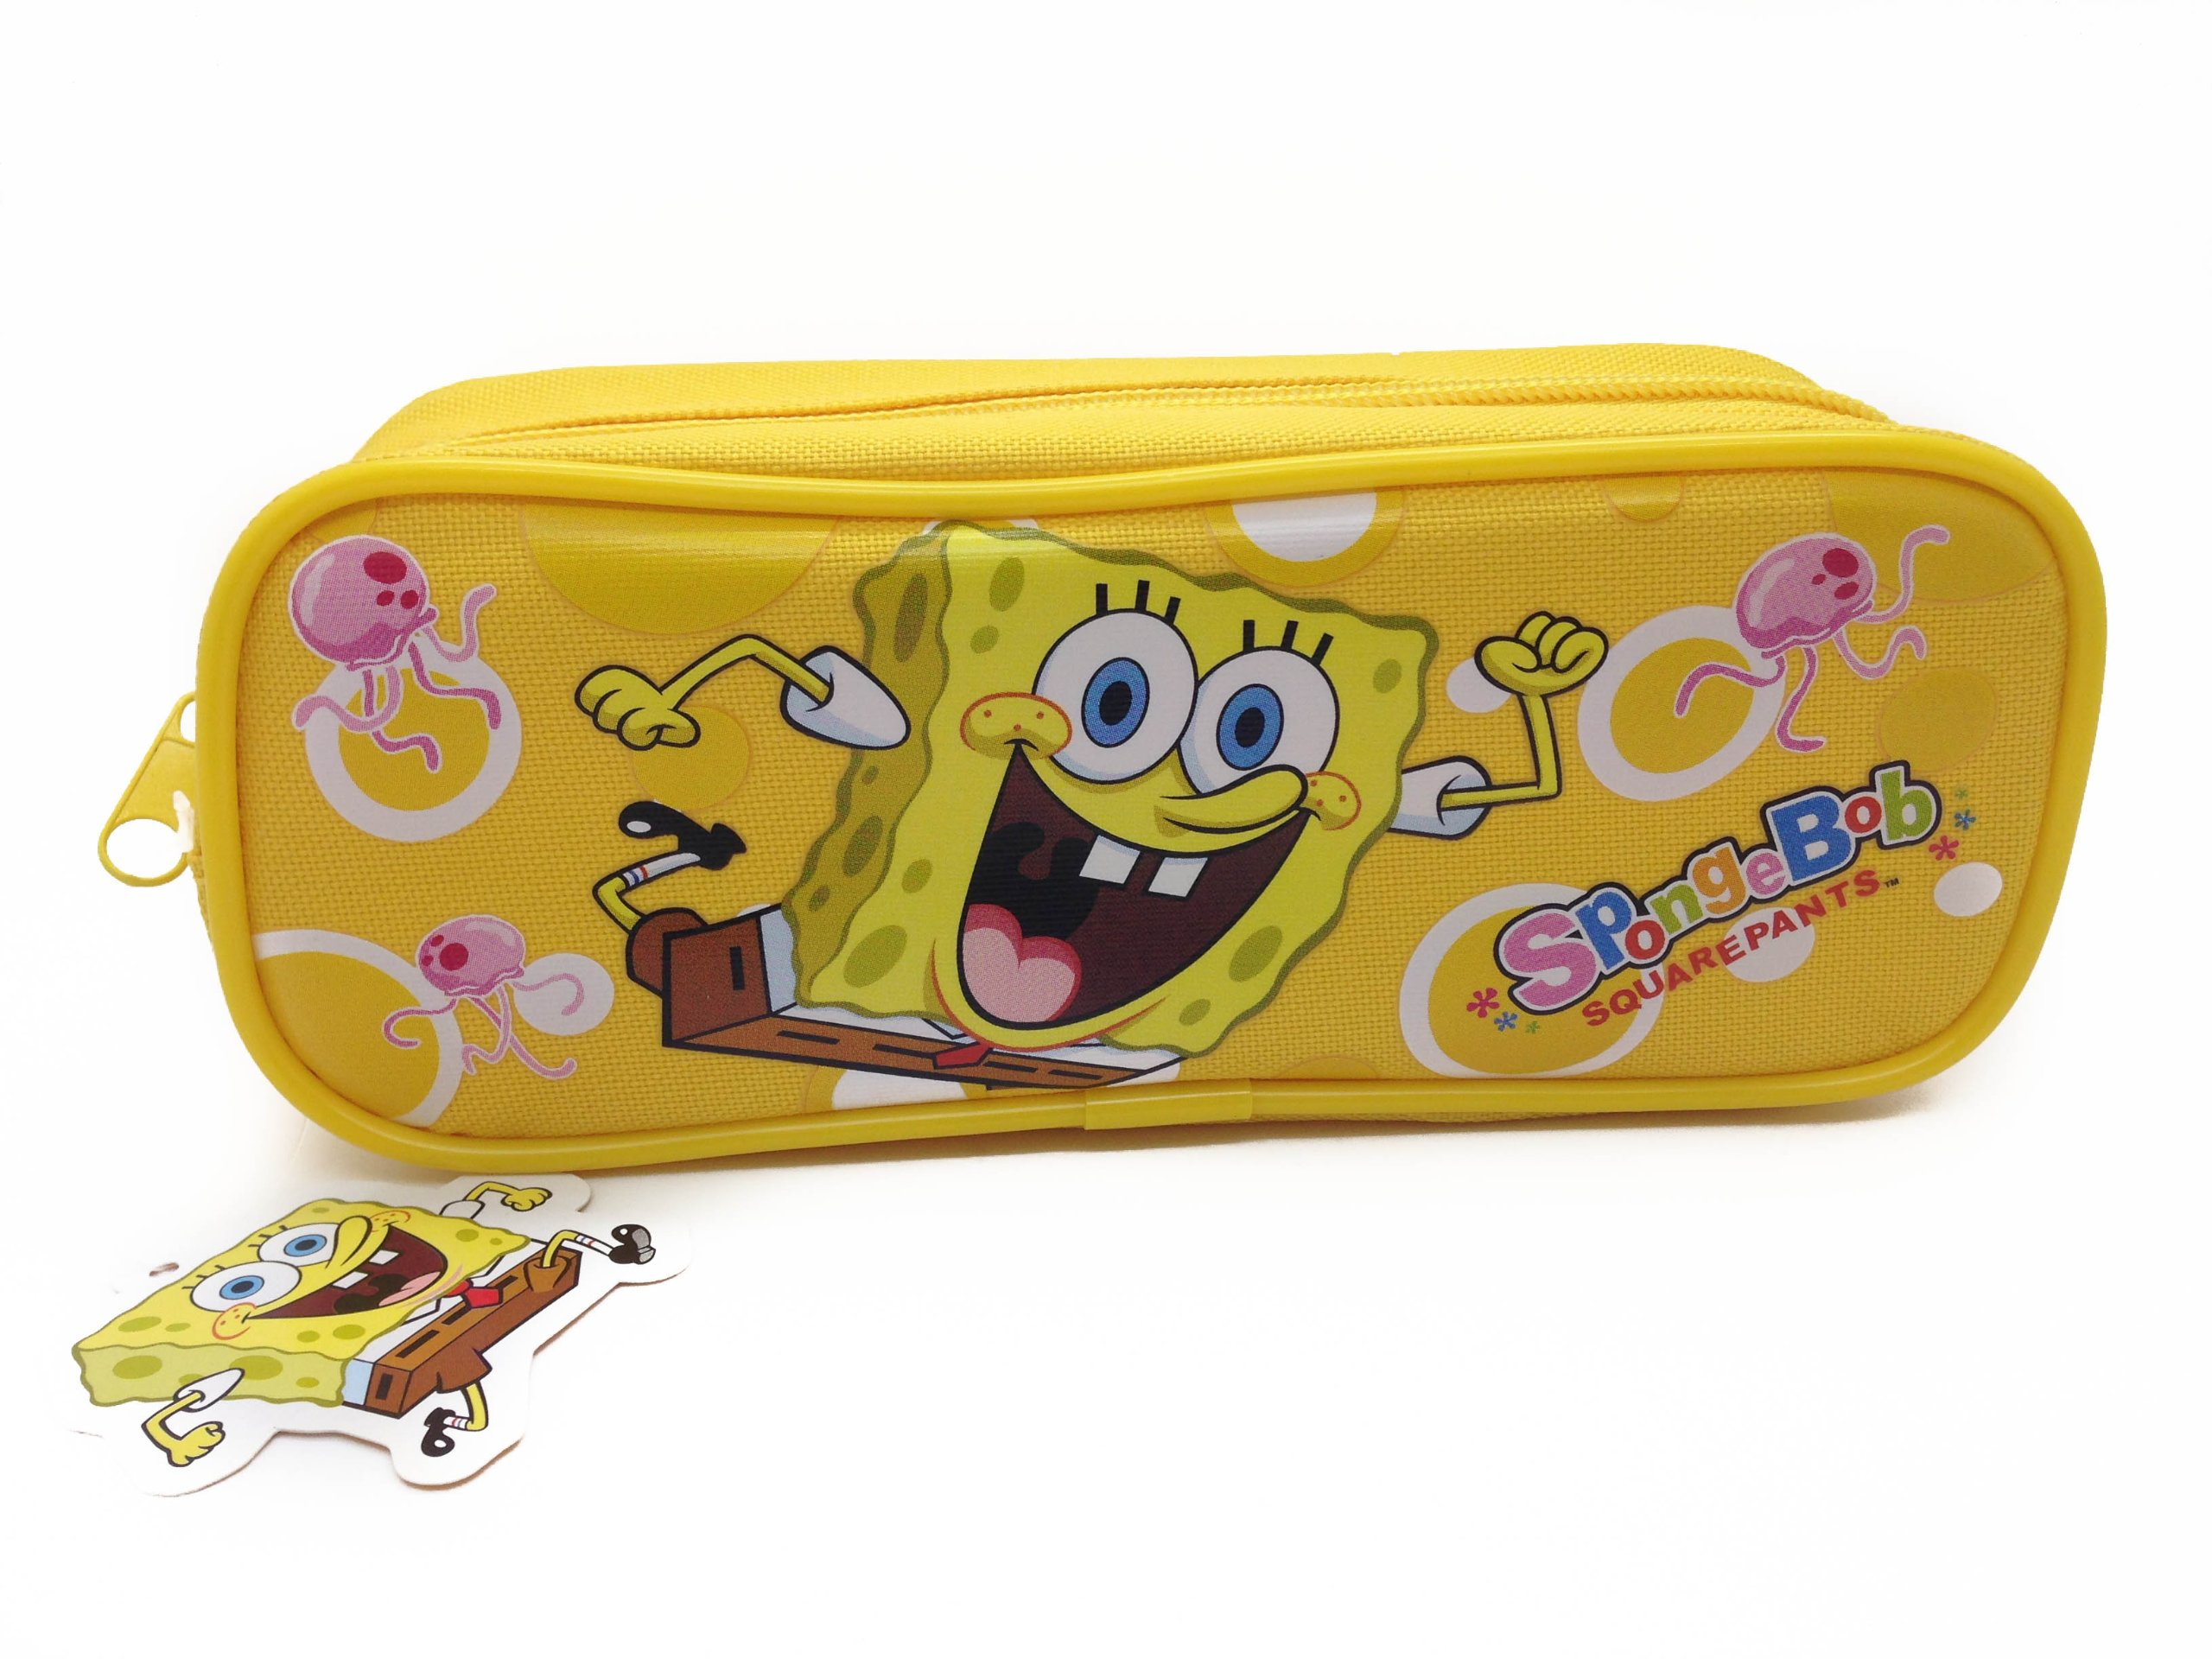 Officially Licensed Single Zipper Pouch Yellow Pencil Case - Spongebob